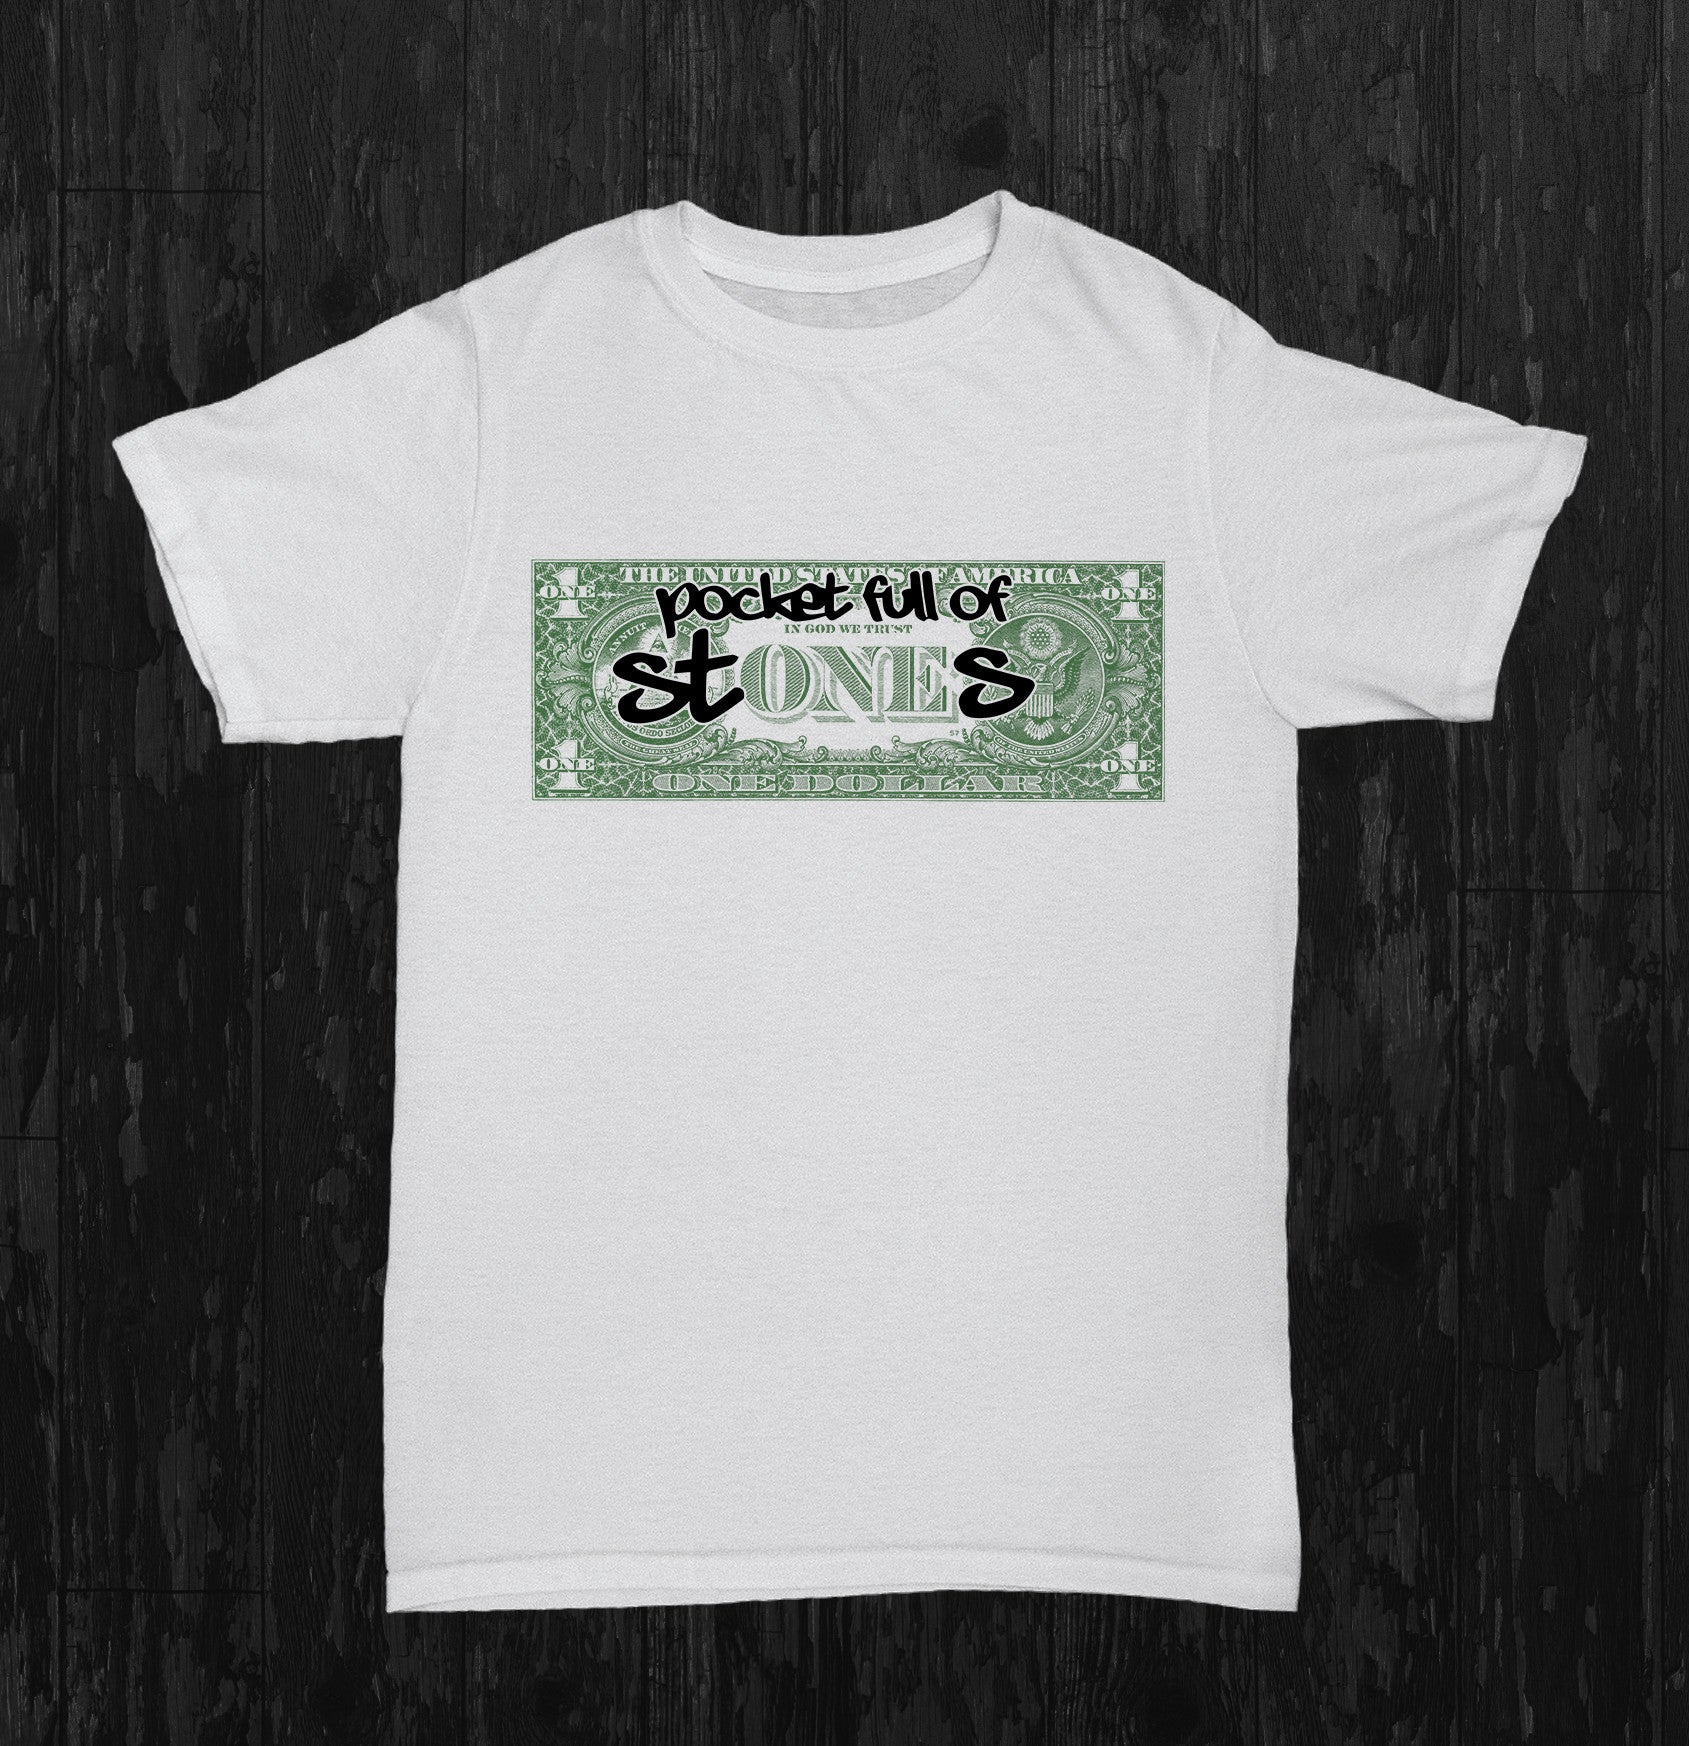 Pocket Full of Stones T-shirt